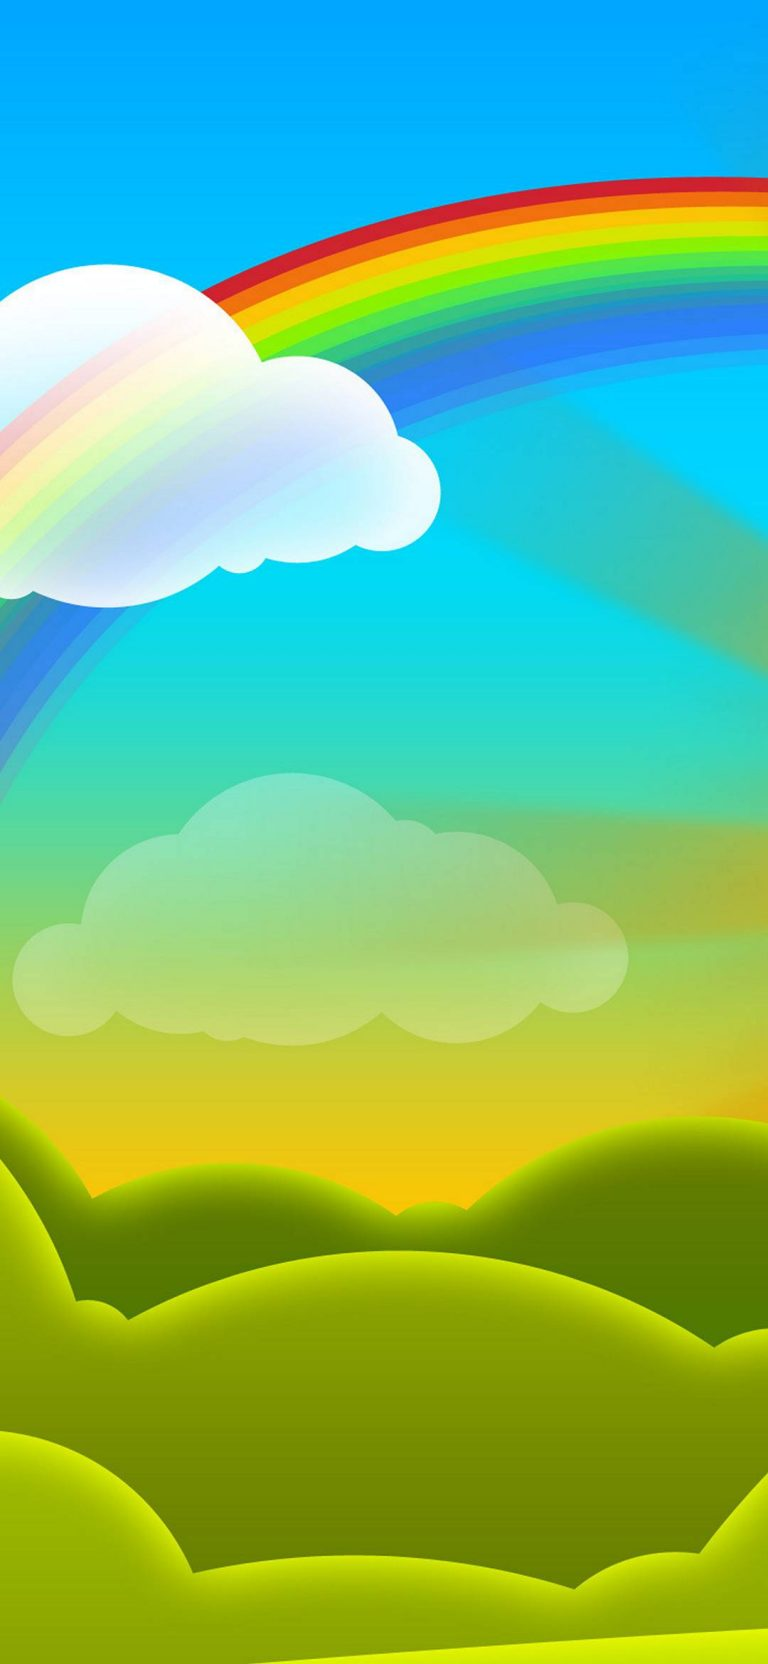 Rainbow Vector Cartoon Wallpaper 1080x2340 768x1664